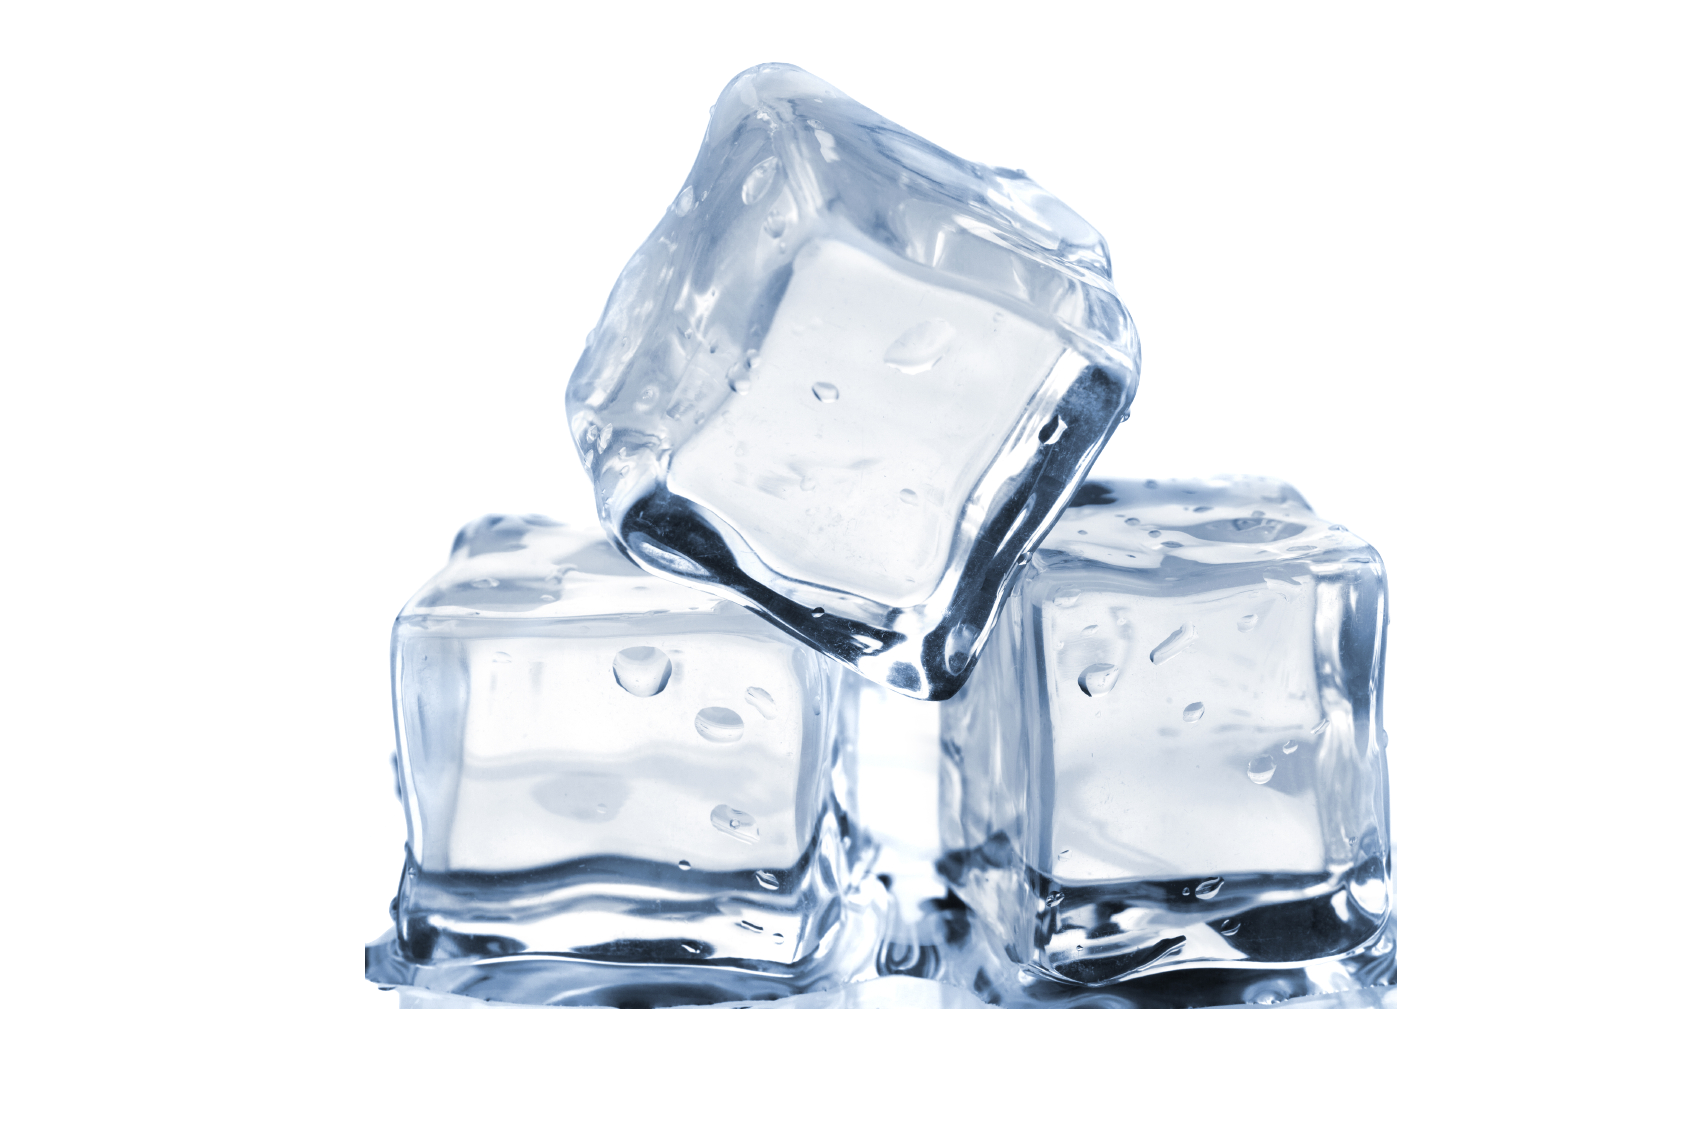 Ice Cube Icemaker Clear Ice Ice Cubes Png Image Ice Cube Png Ice Png Ice Cube